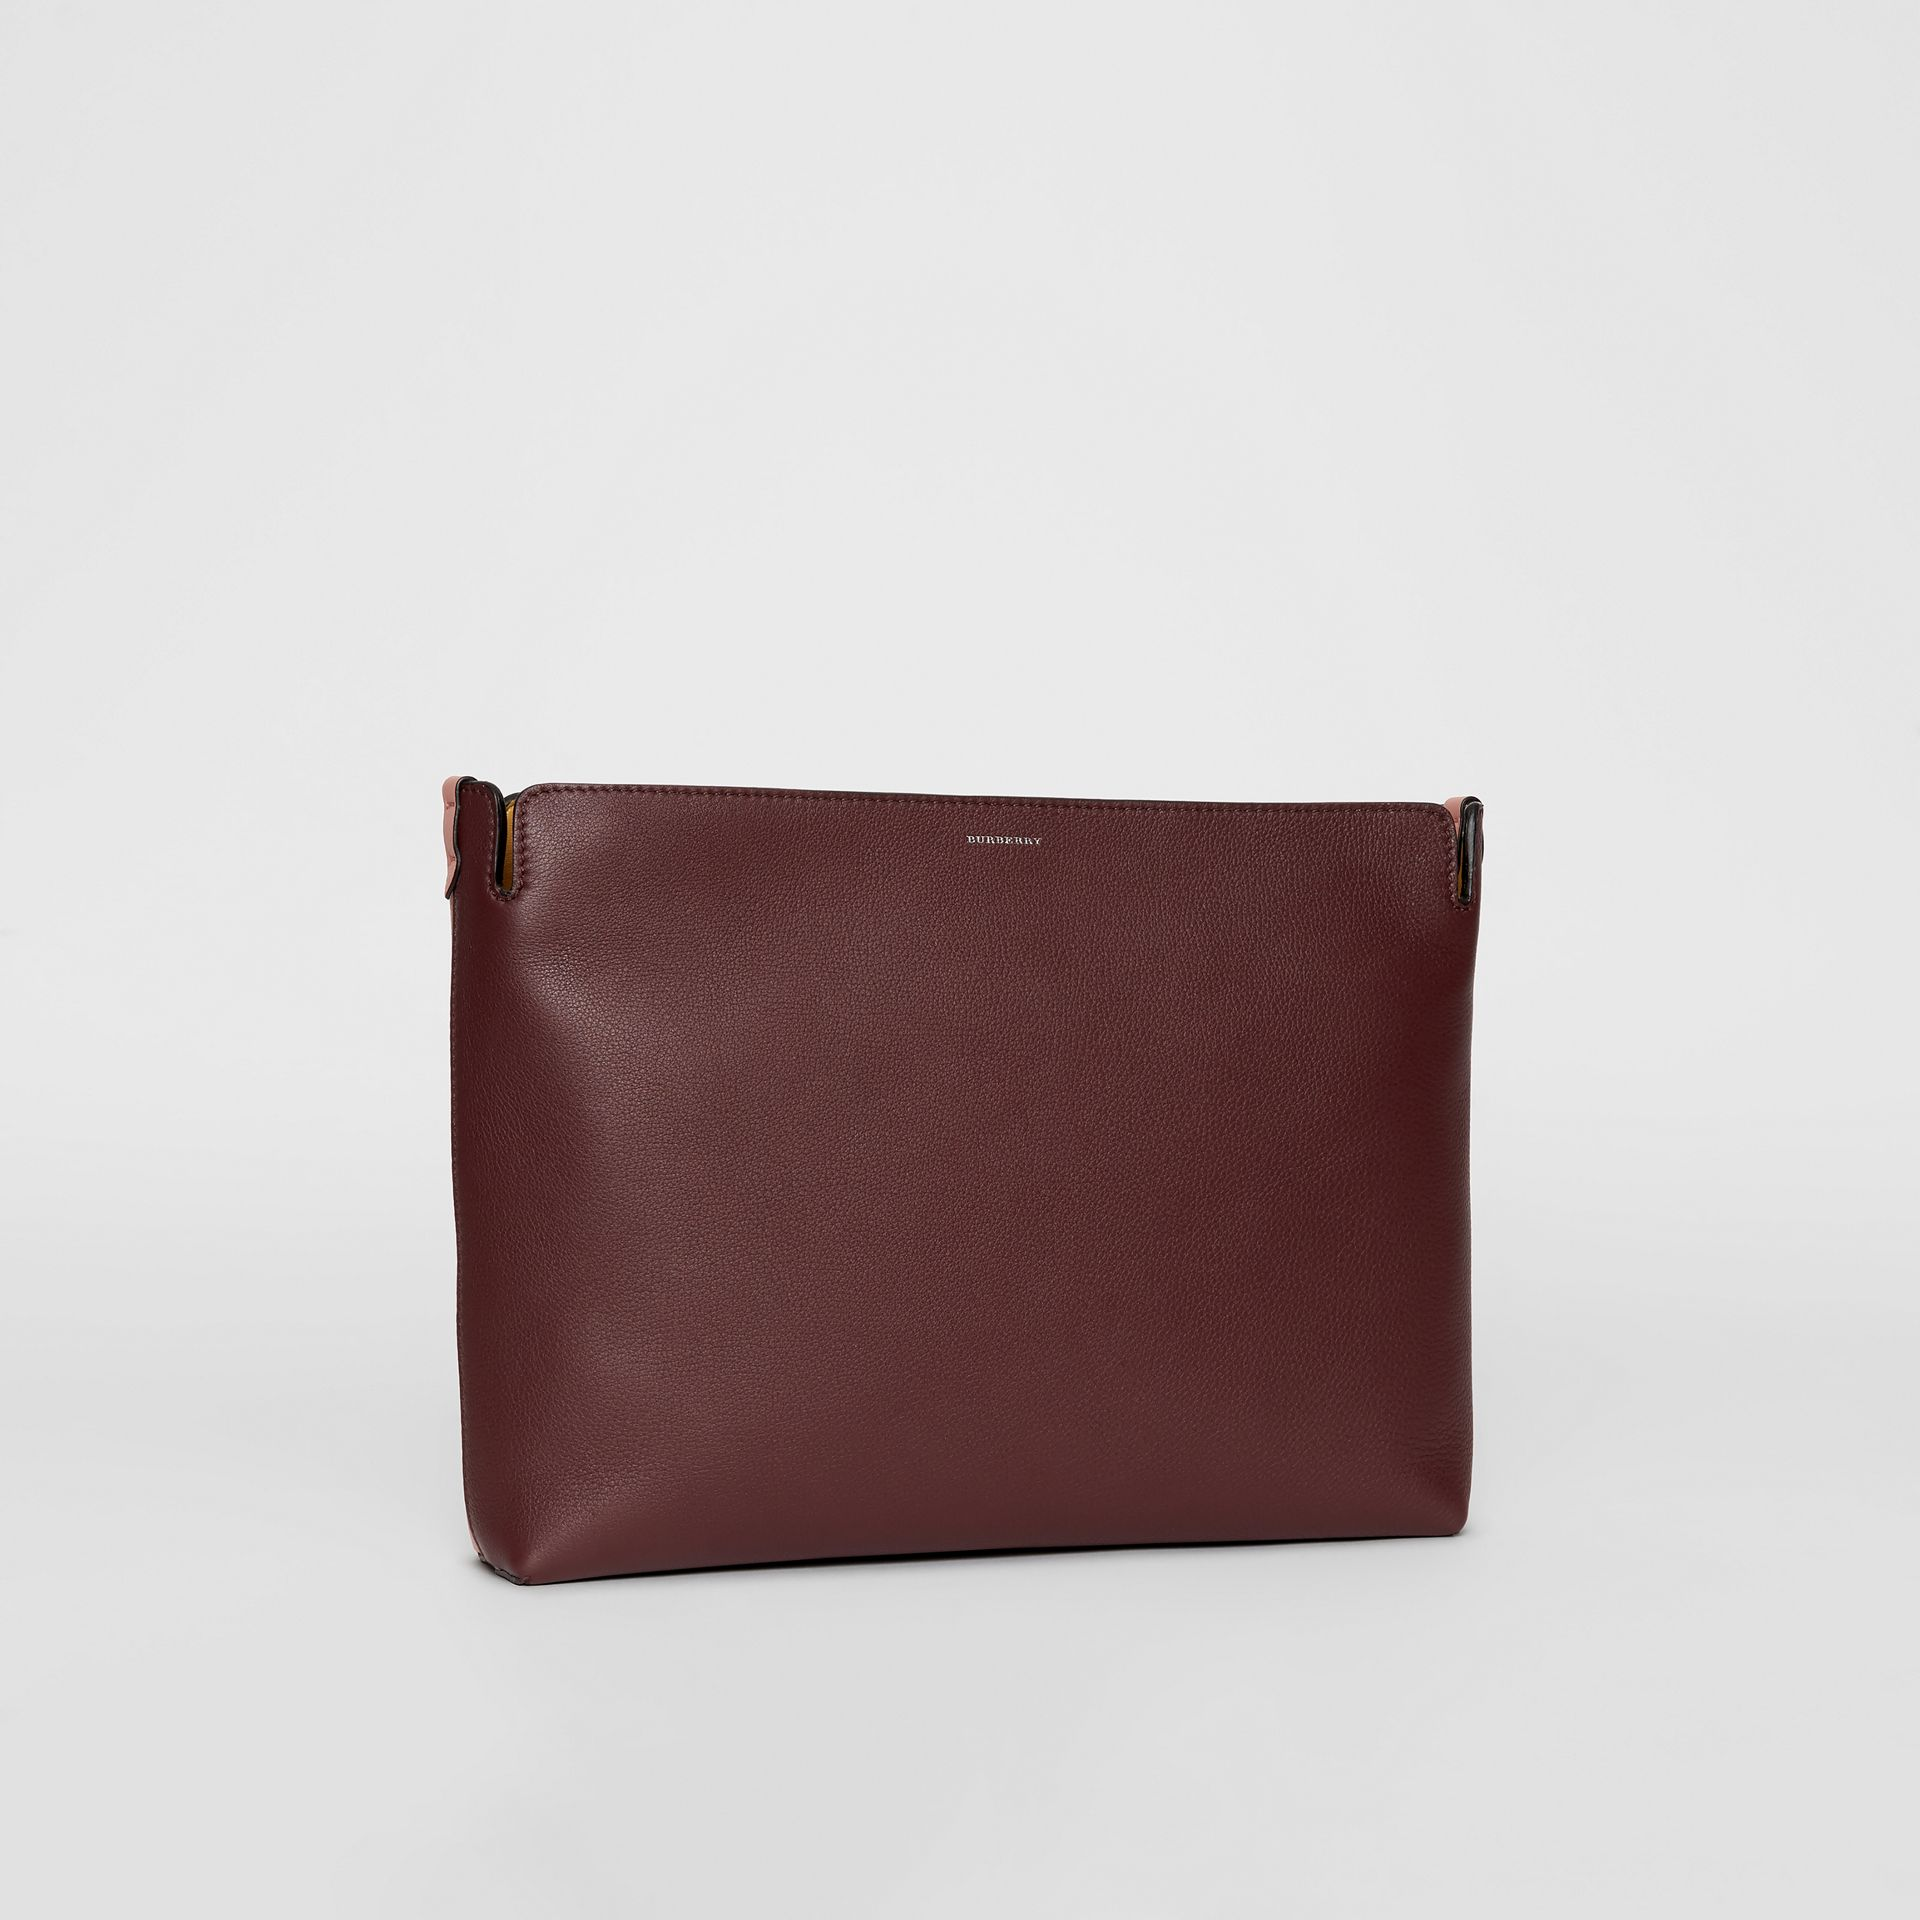 Large Tri-tone Leather Clutch in Deep Claret/dusty Rose - Women | Burberry - gallery image 4